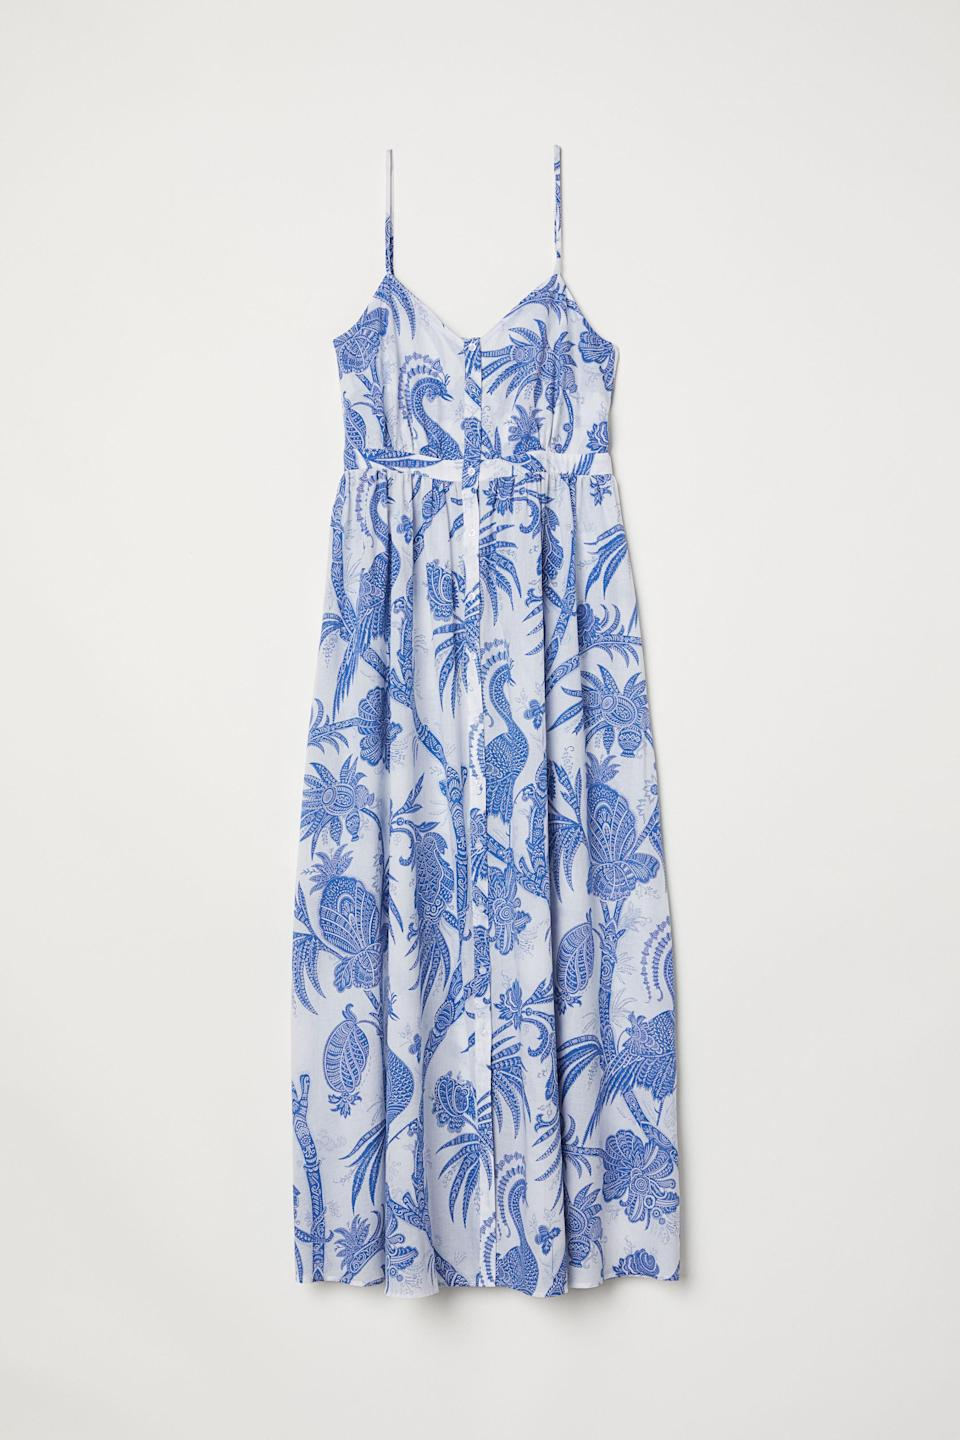 "<p><span>No summer wardrobe is complete without a floaty maxi, and just look at this tropical print H&M number.</span><br><em><a href=""http://www2.hm.com/en_gb/productpage.0681246004.html"" rel=""nofollow noopener"" target=""_blank"" data-ylk=""slk:Buy here."" class=""link rapid-noclick-resp""><span>Buy here.</span></a></em> </p>"